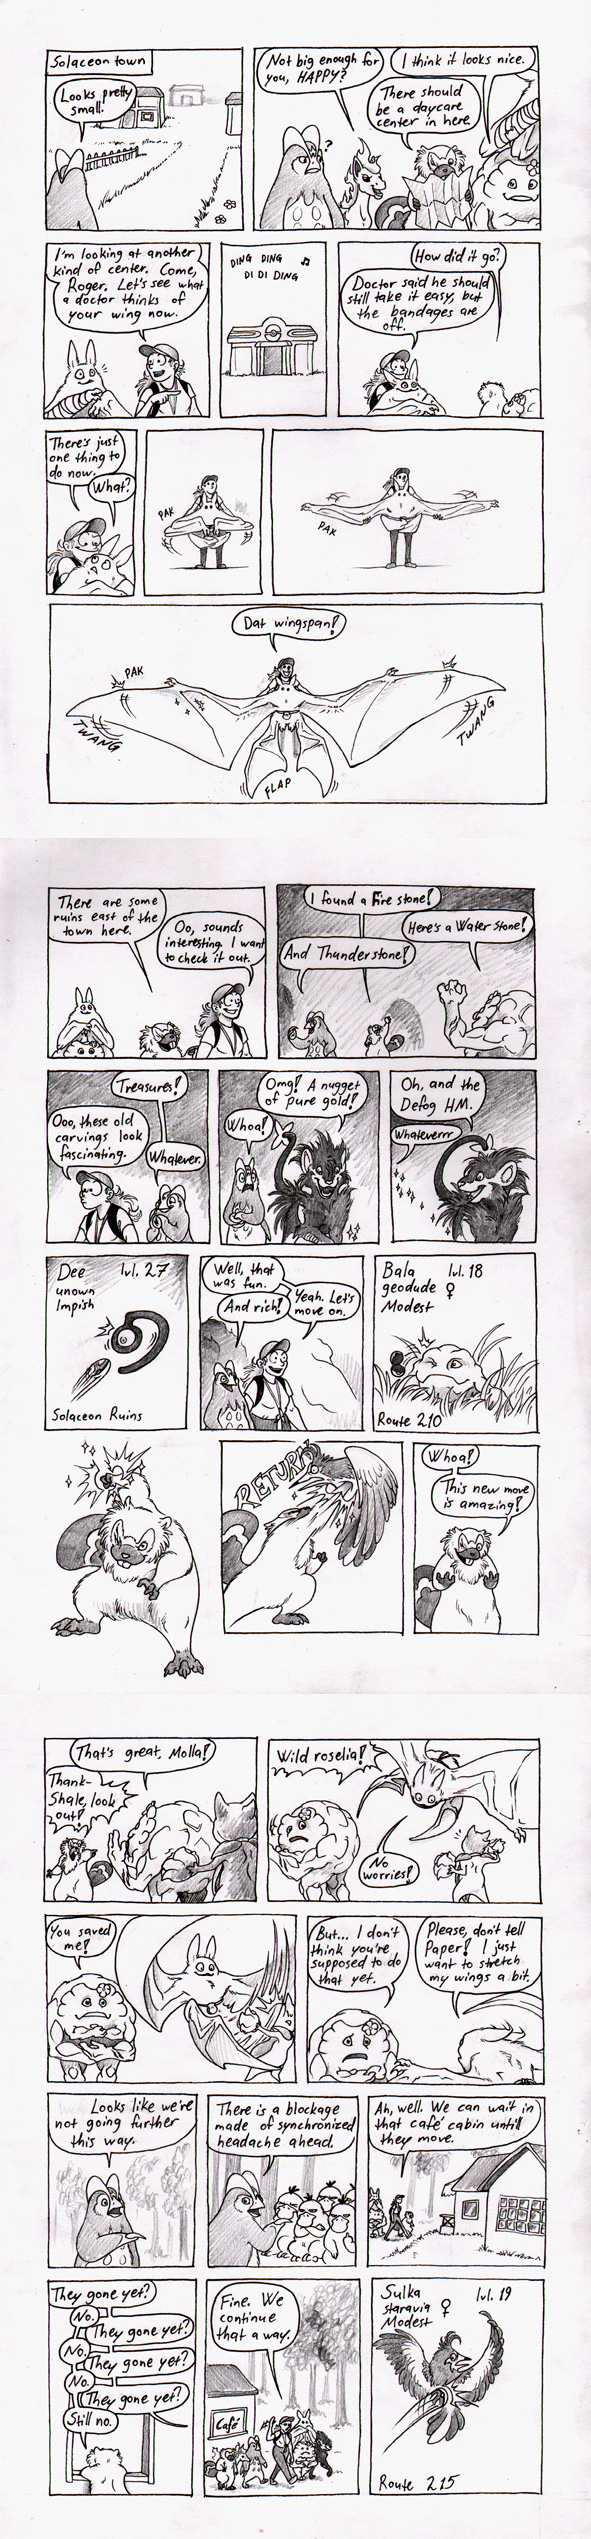 Papermonkey's 'Nuts Lock' part 14 by Paperiapina